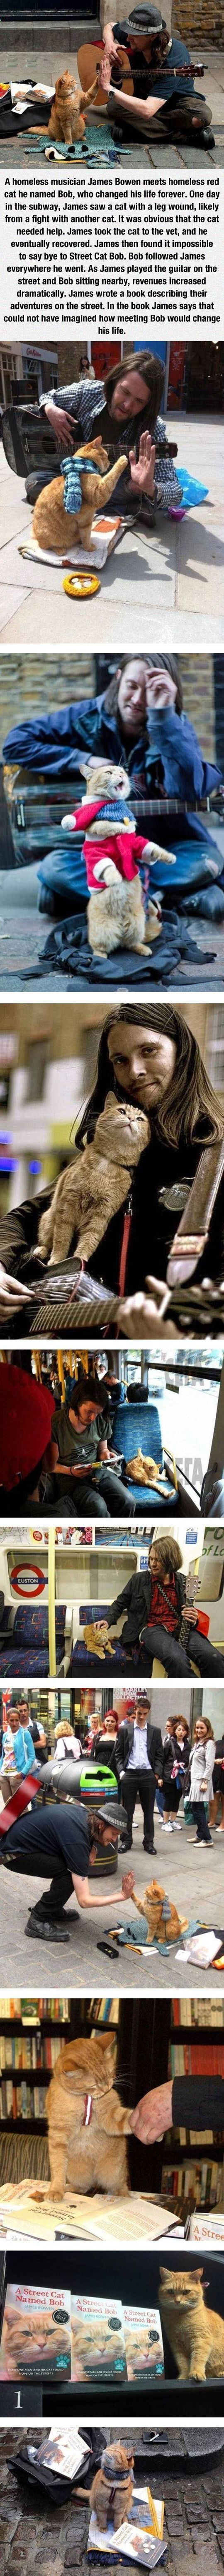 A Homeless Musician And His Cat cat story musician cool story::